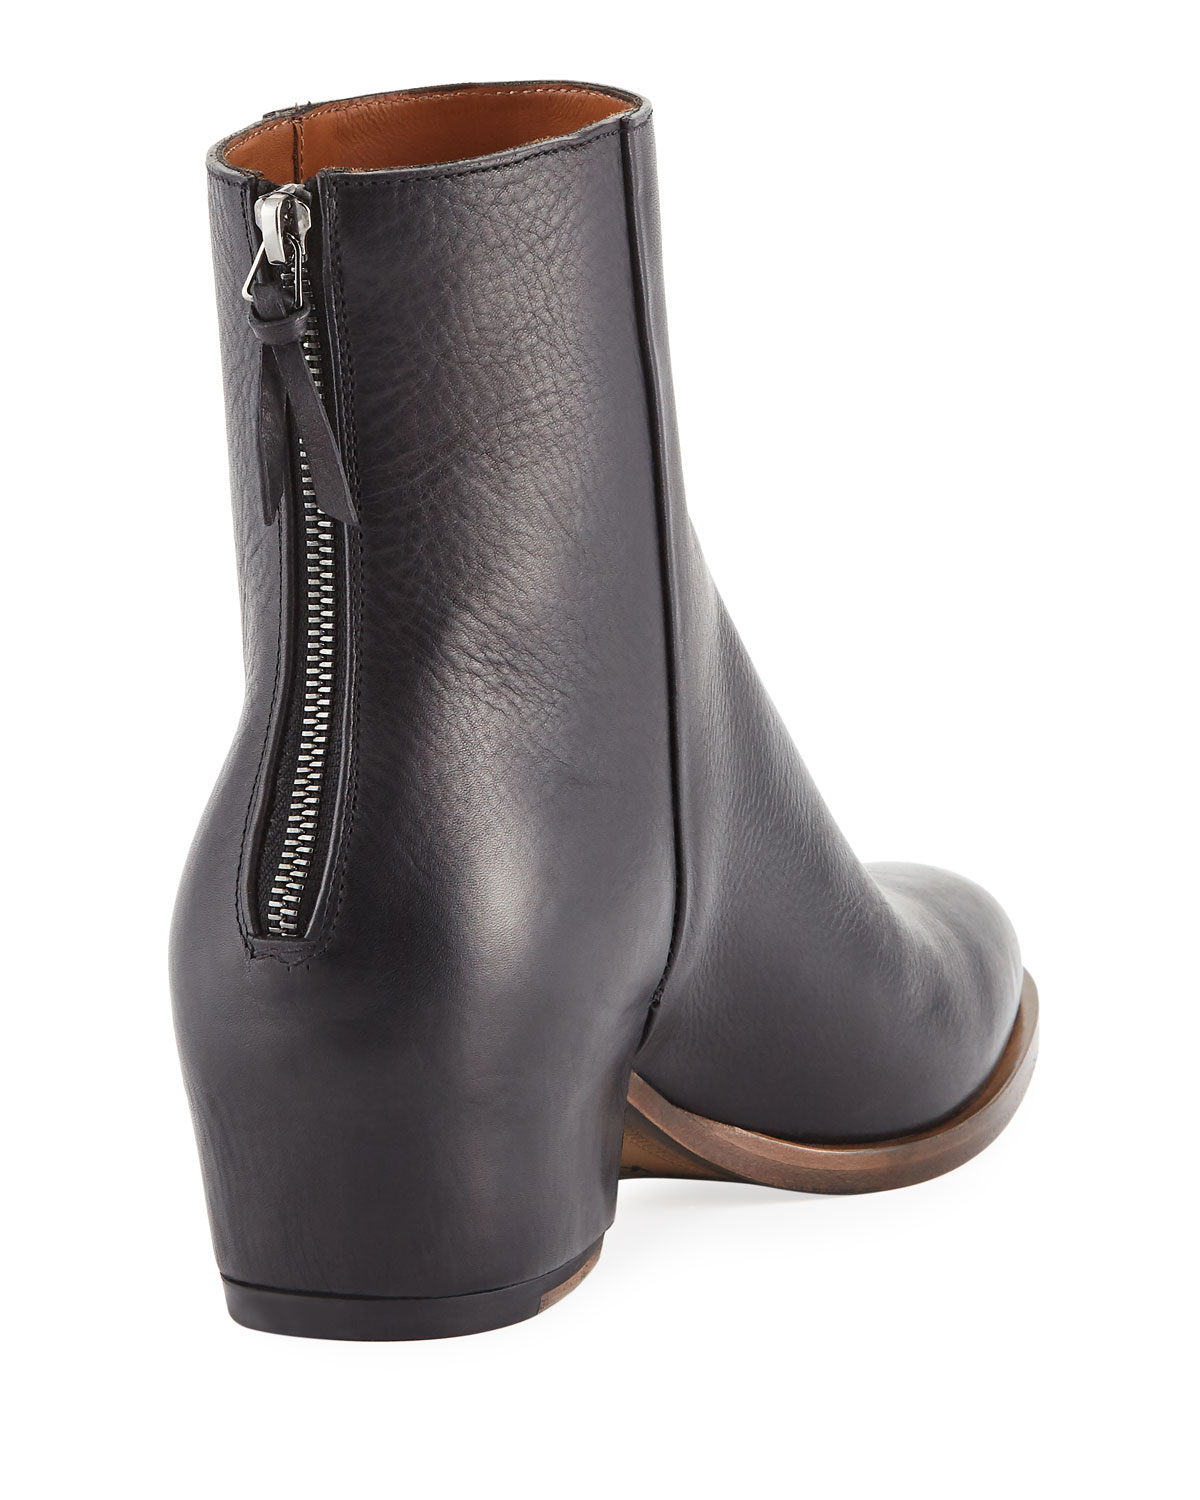 Givenchy GB3 Zip Boots